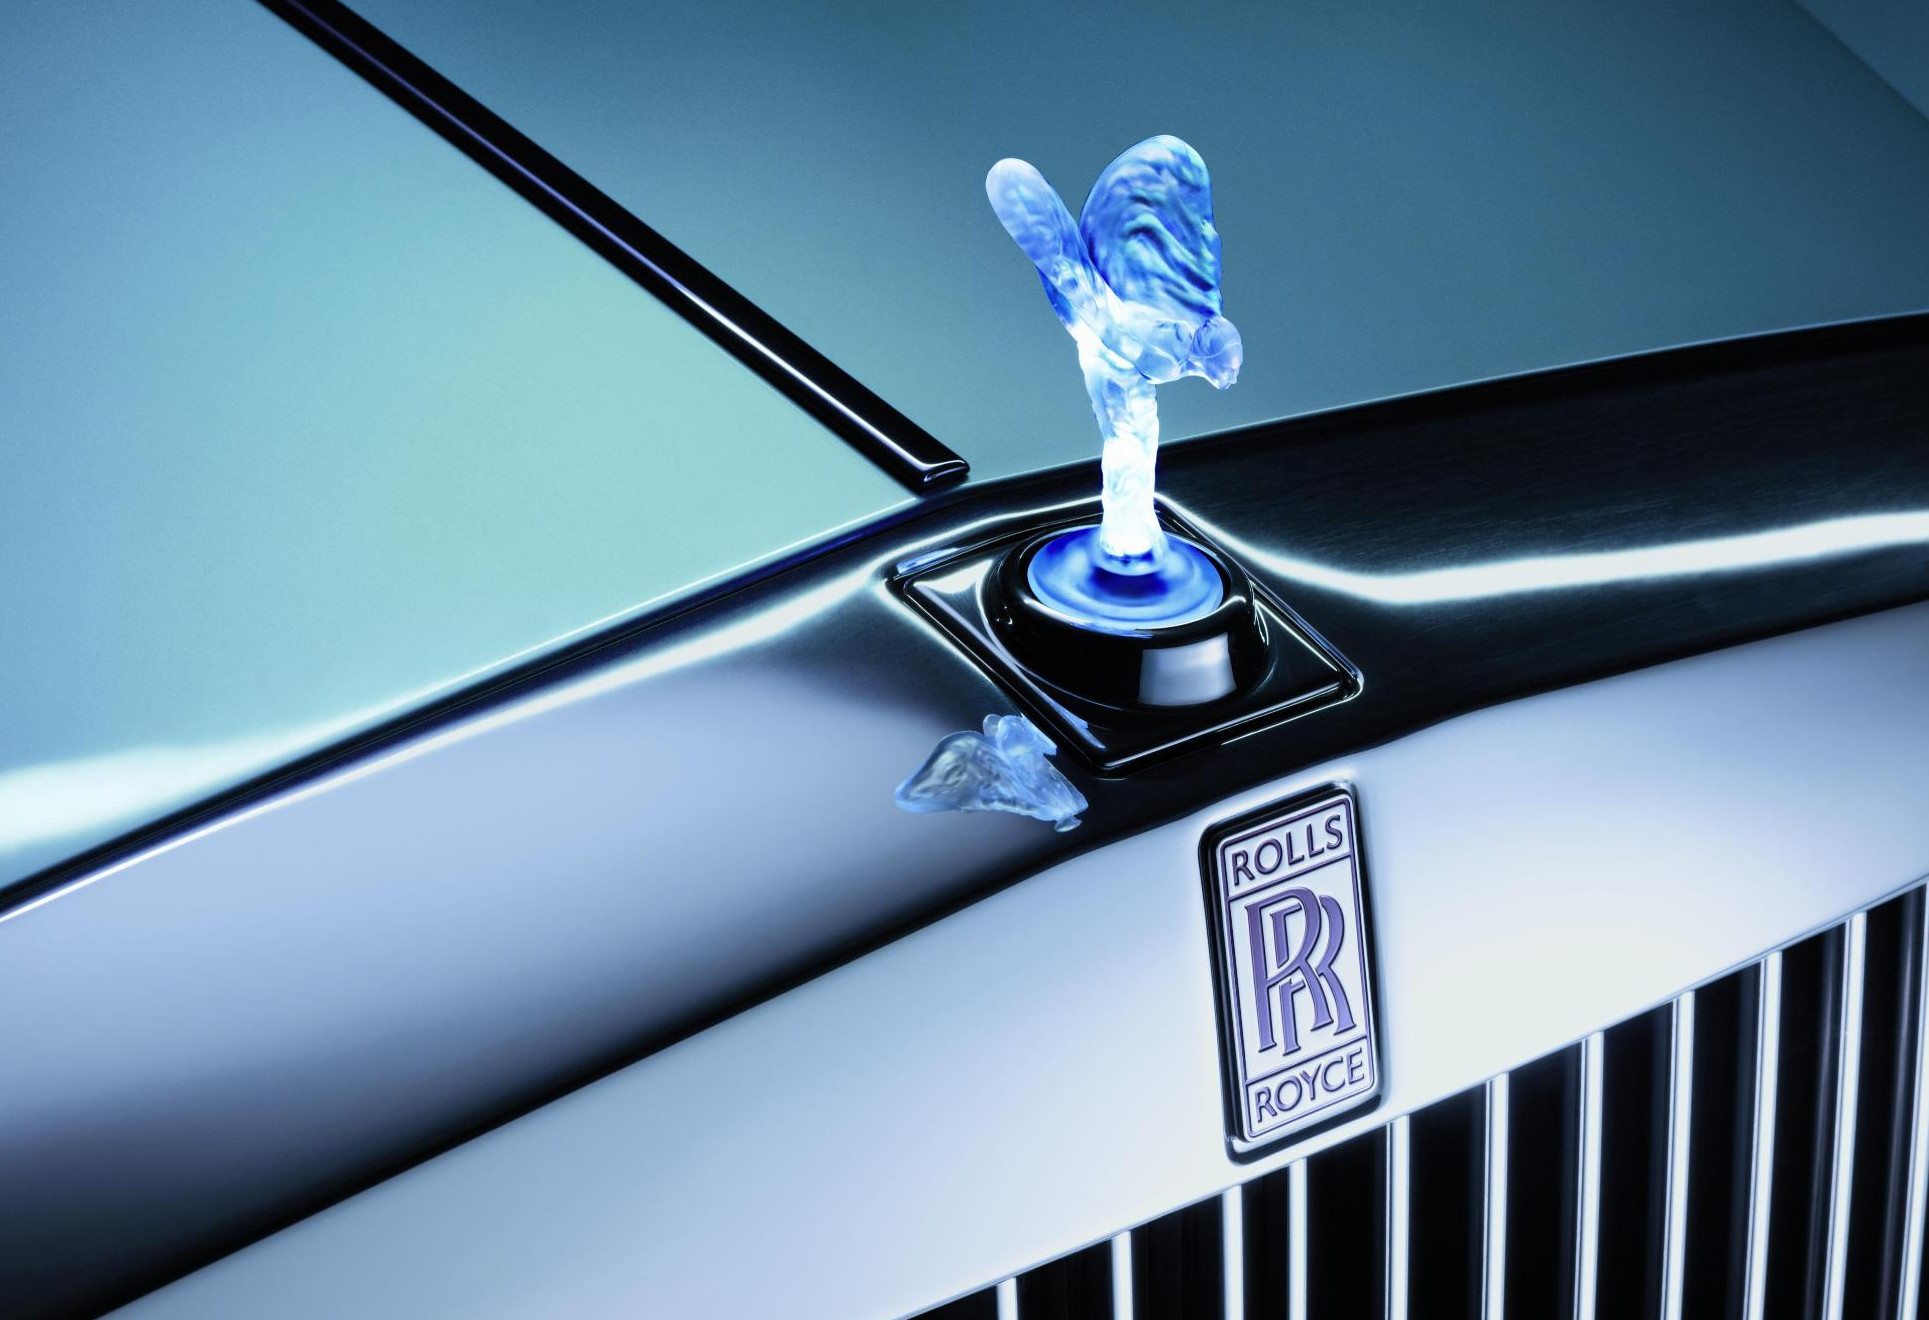 Rolls Royce: The Spirit of Ecstasy turns digital | #DSMMCM1314 ...